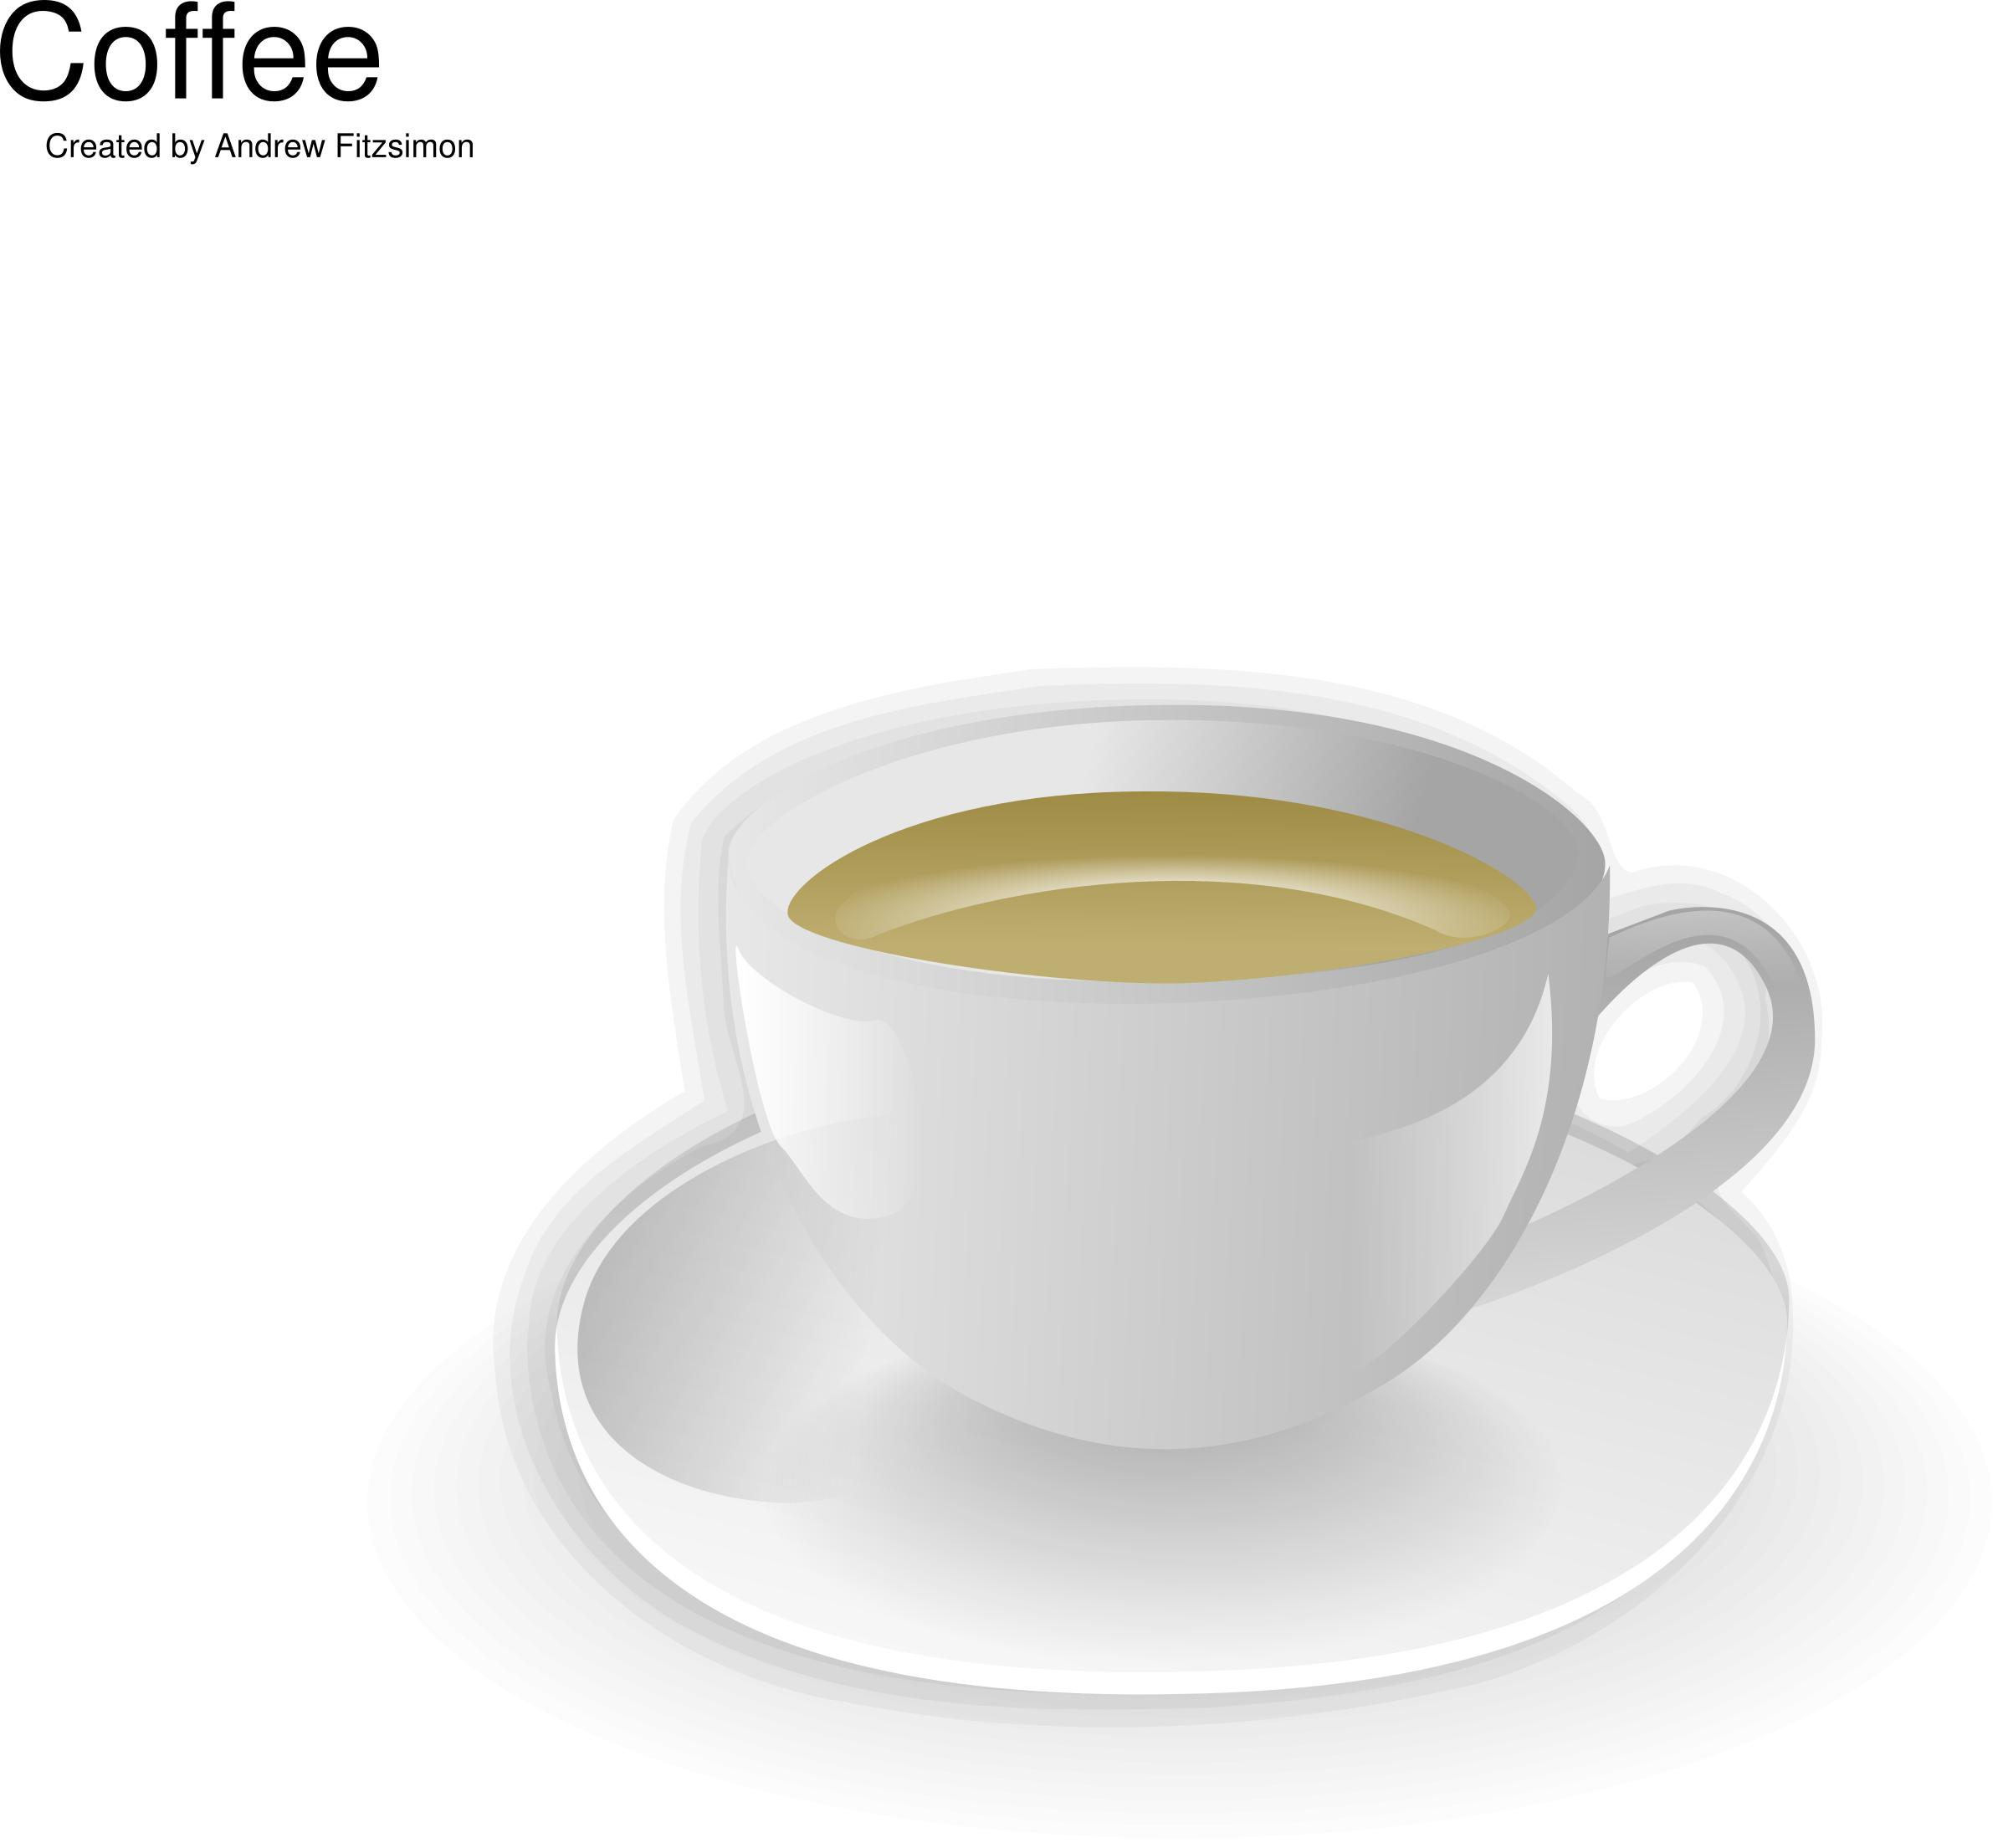 Fullsize Of Coffee Cup Images Free